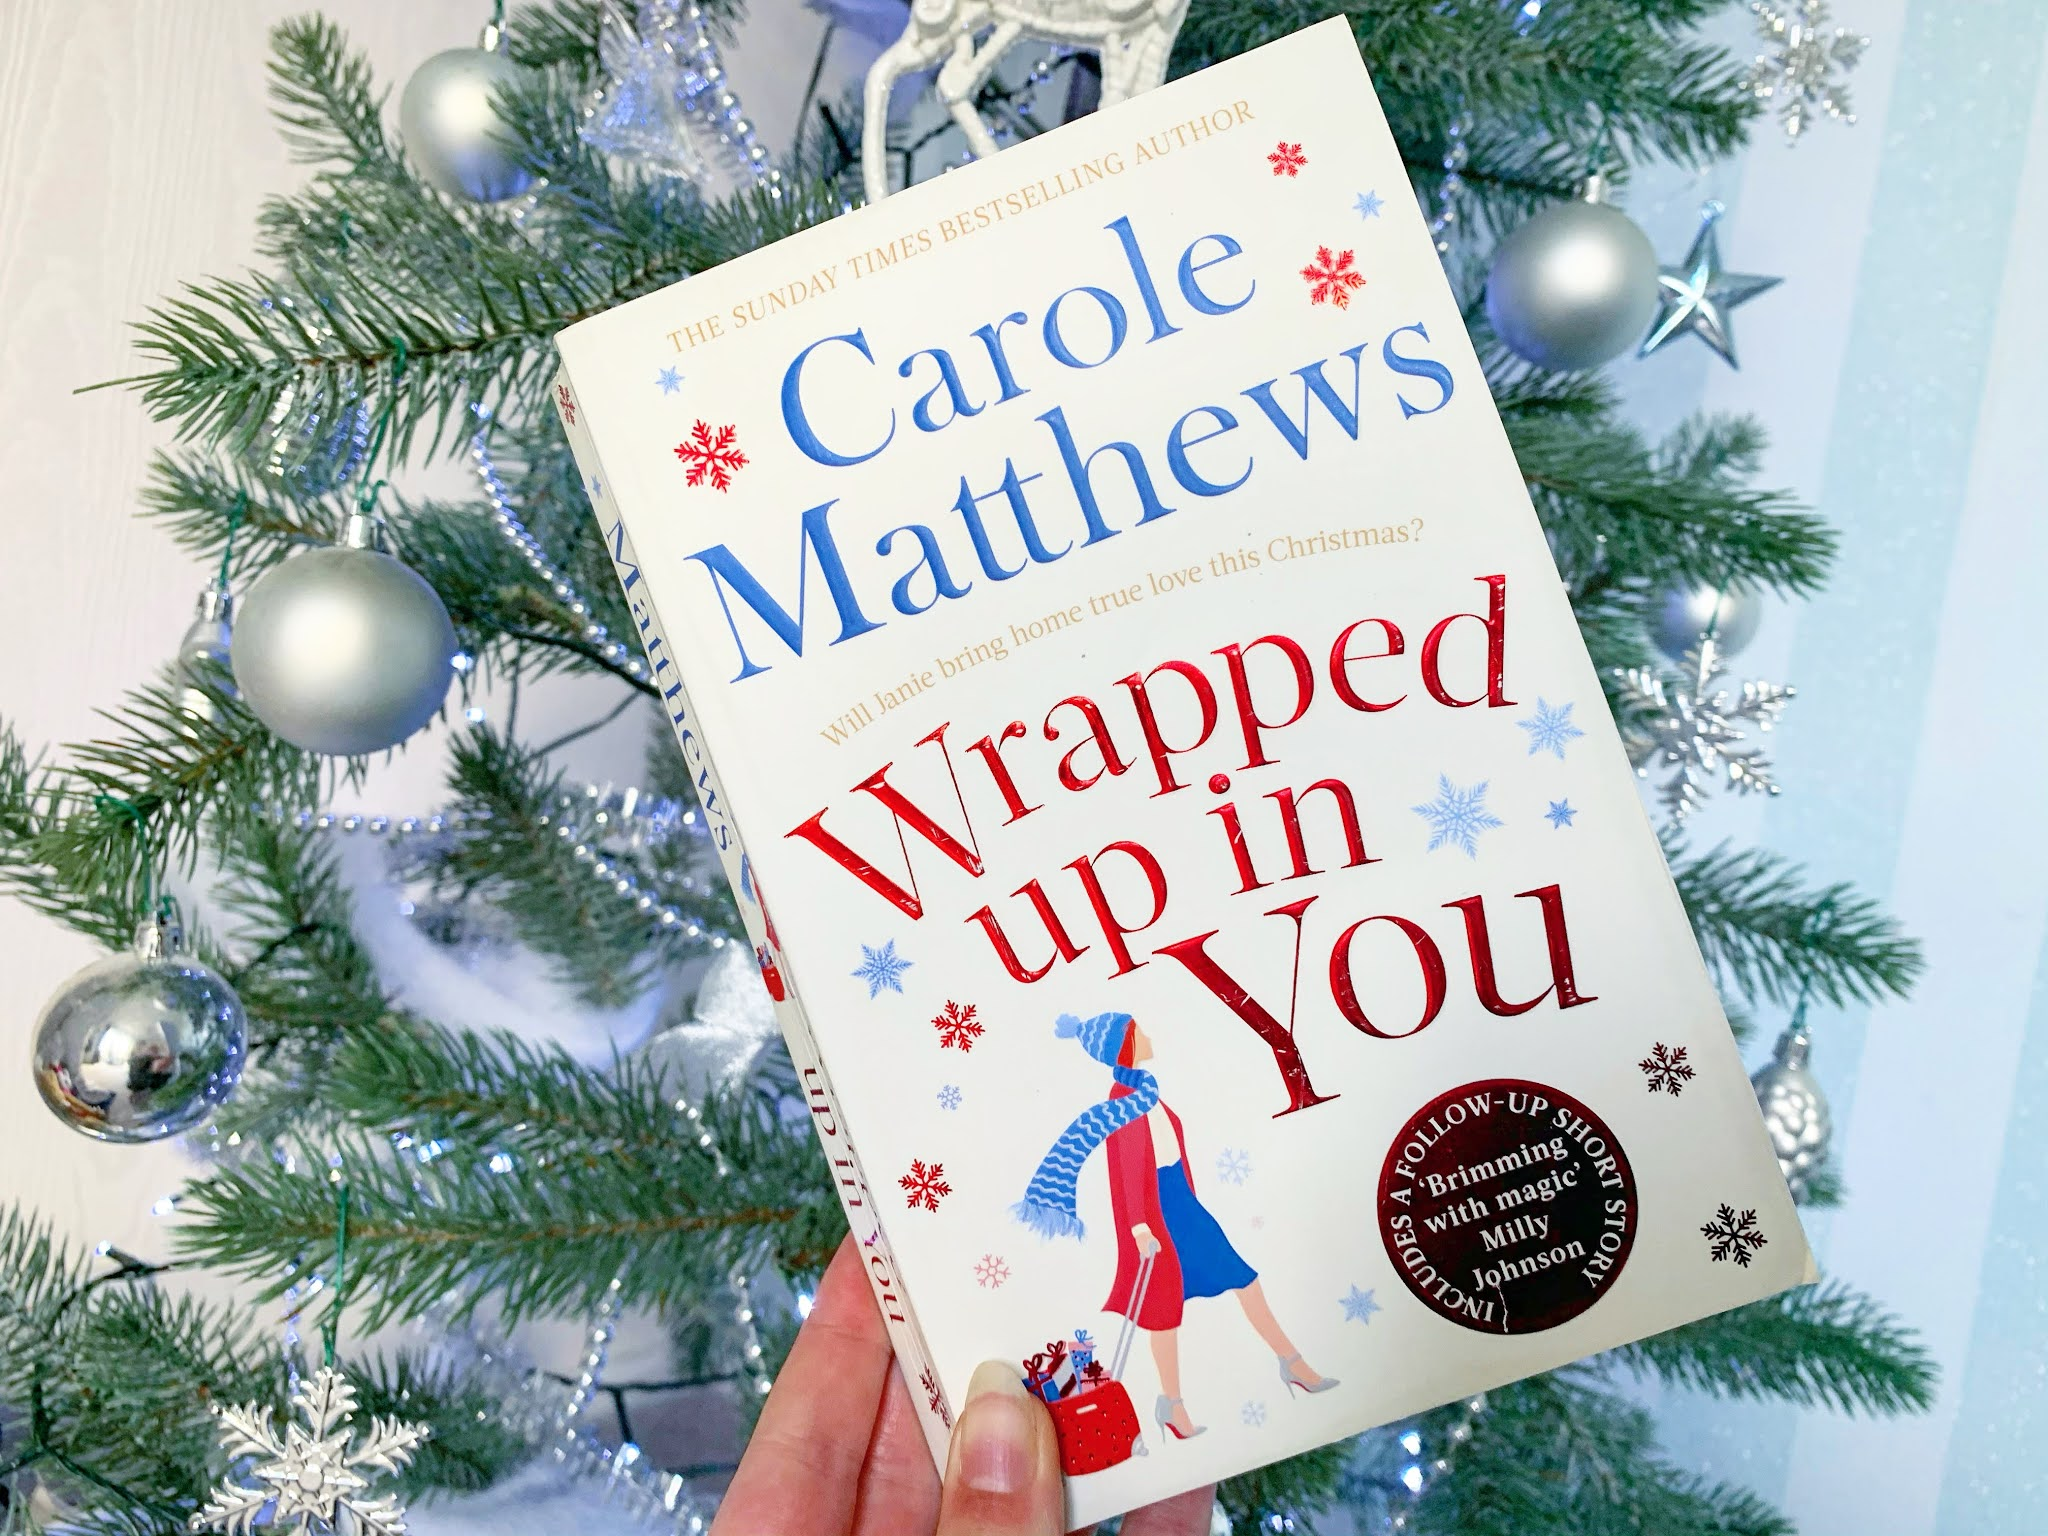 Wrapped Up in You by Carole Matthews book under the Christmas tree